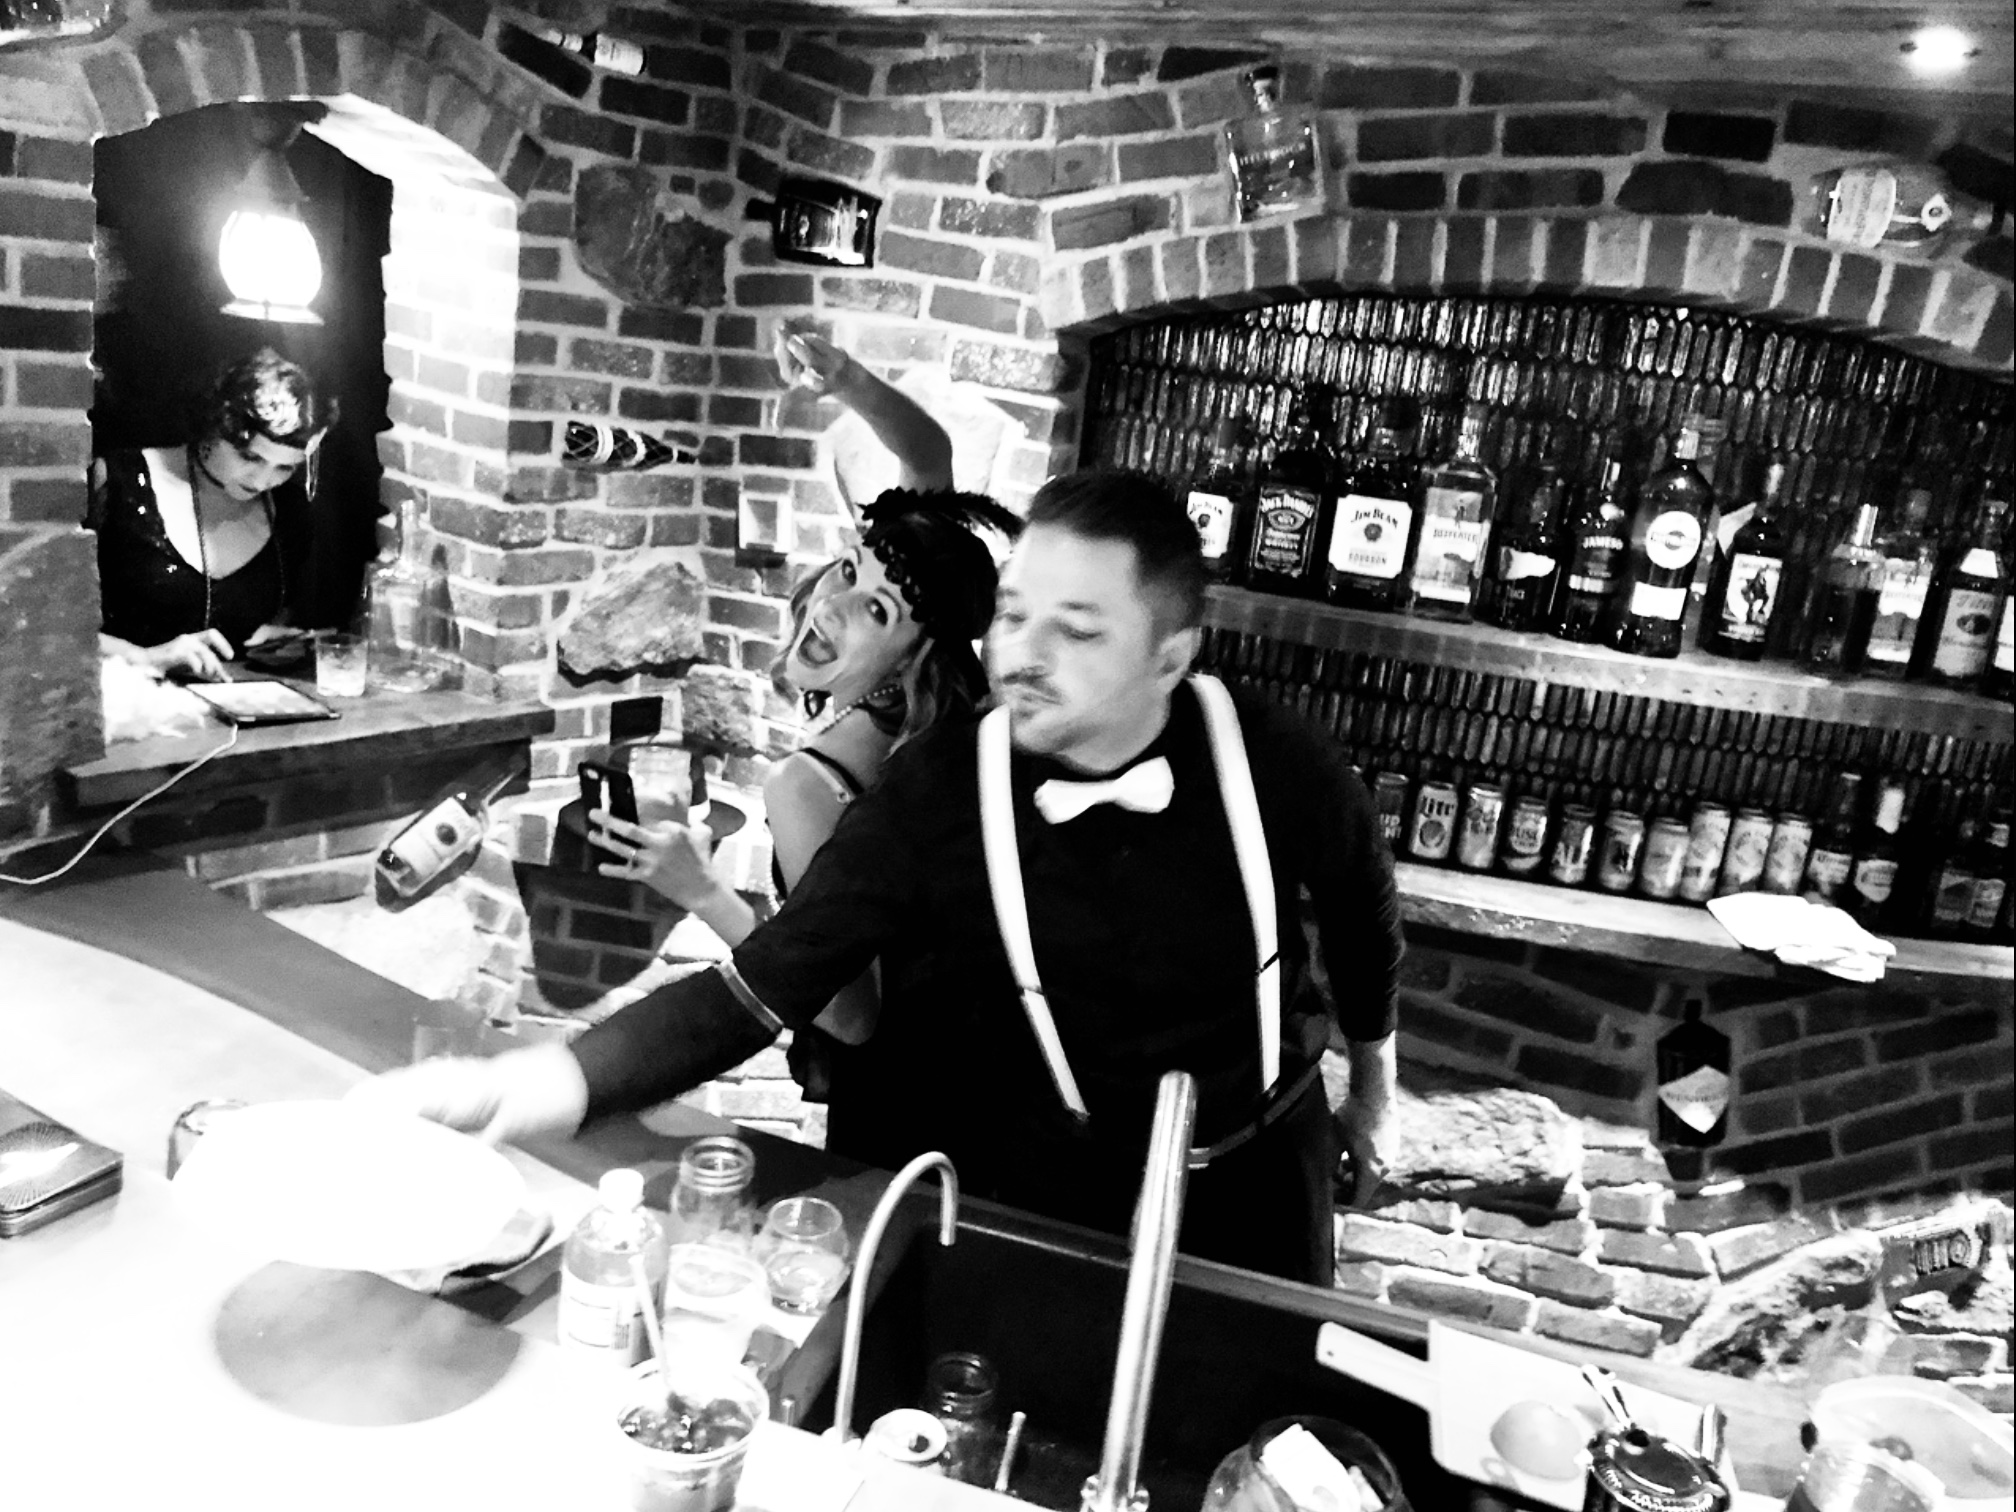 Shenanigans behind the bar. Notice the bottles embedded in the brick.